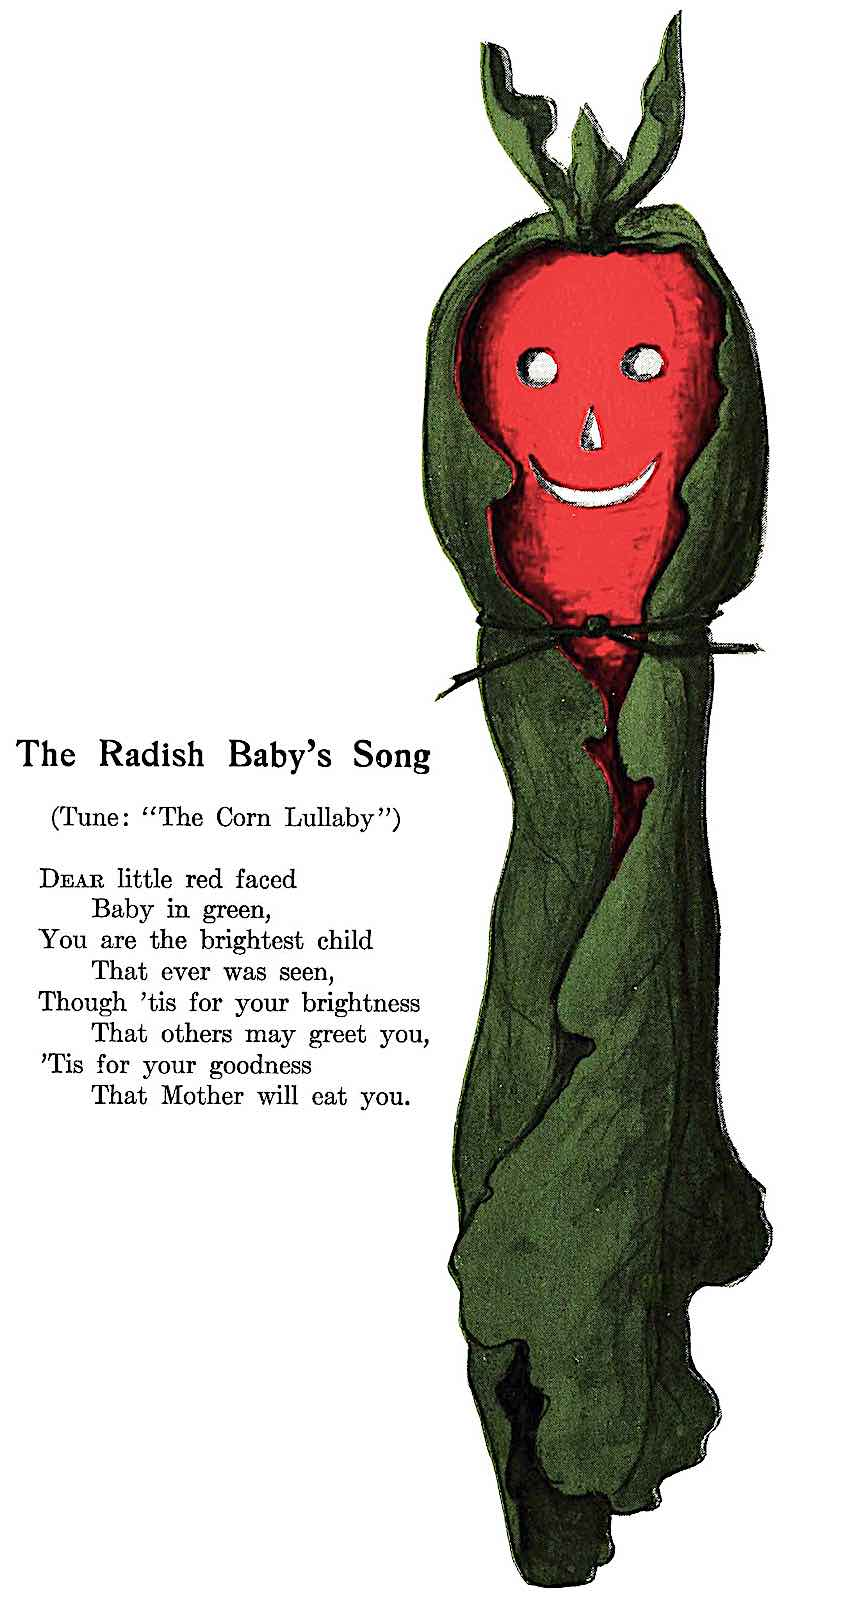 a 1906 home made Radish Baby toy